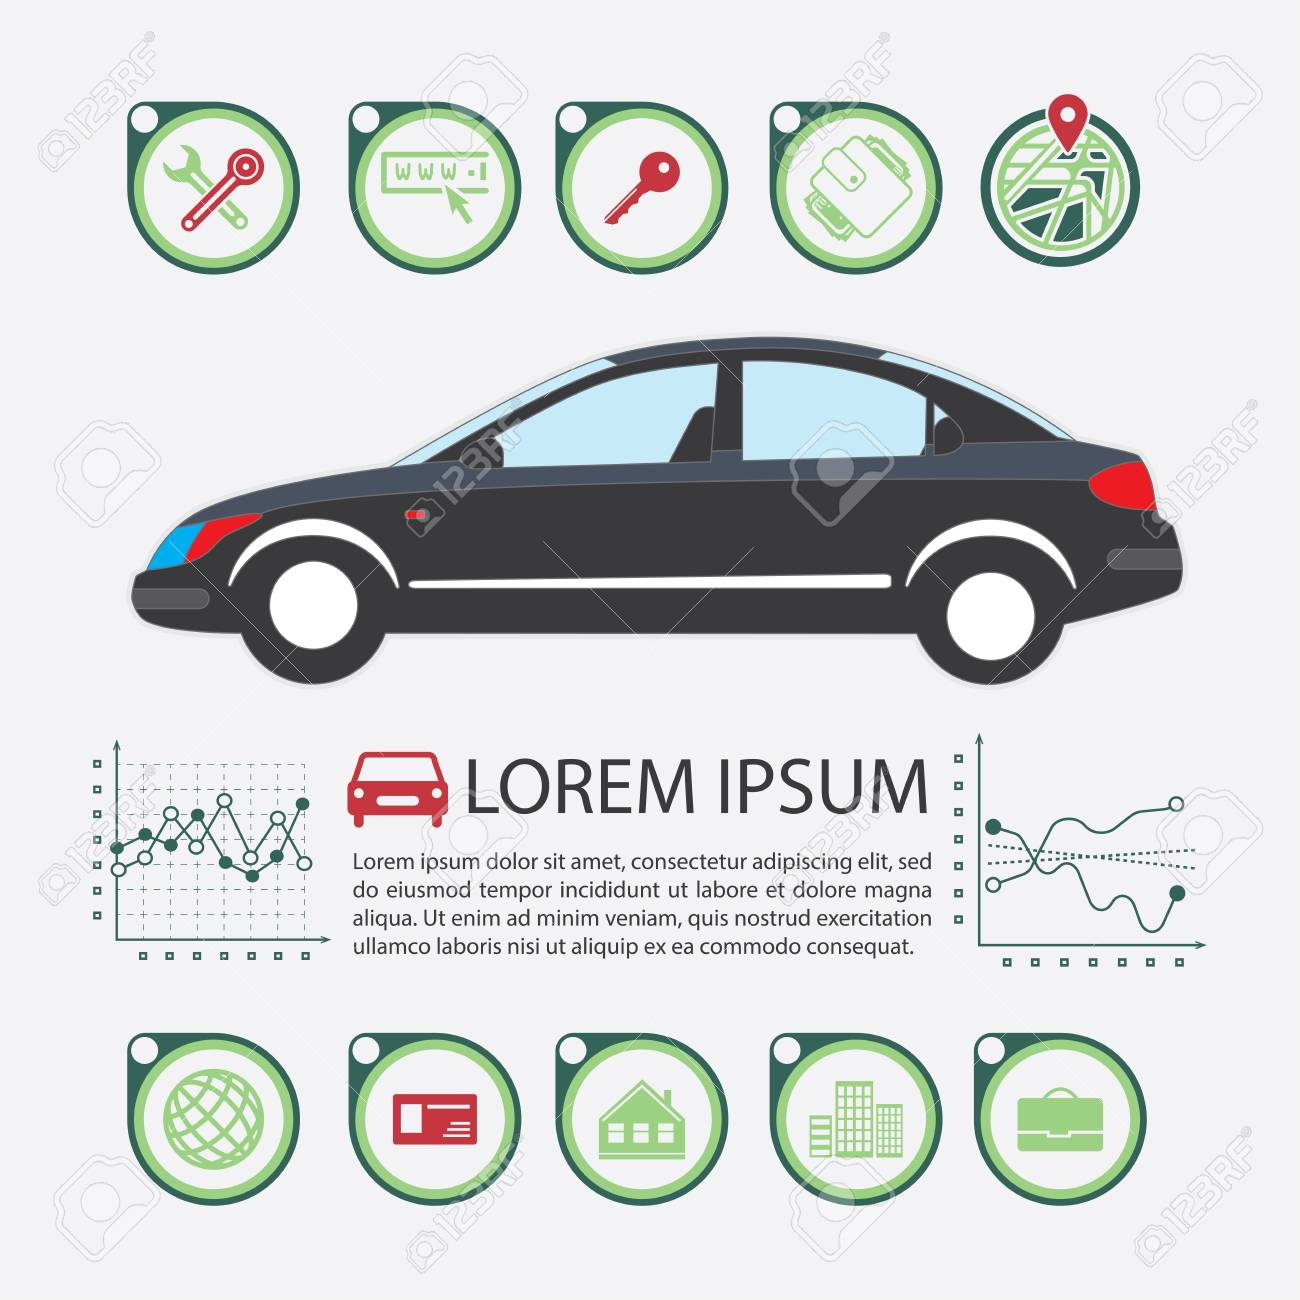 Information Graphics Design Element And Vehicle Illustrations Royalty Free Cliparts Vectors And Stock Illustration Image 59596066